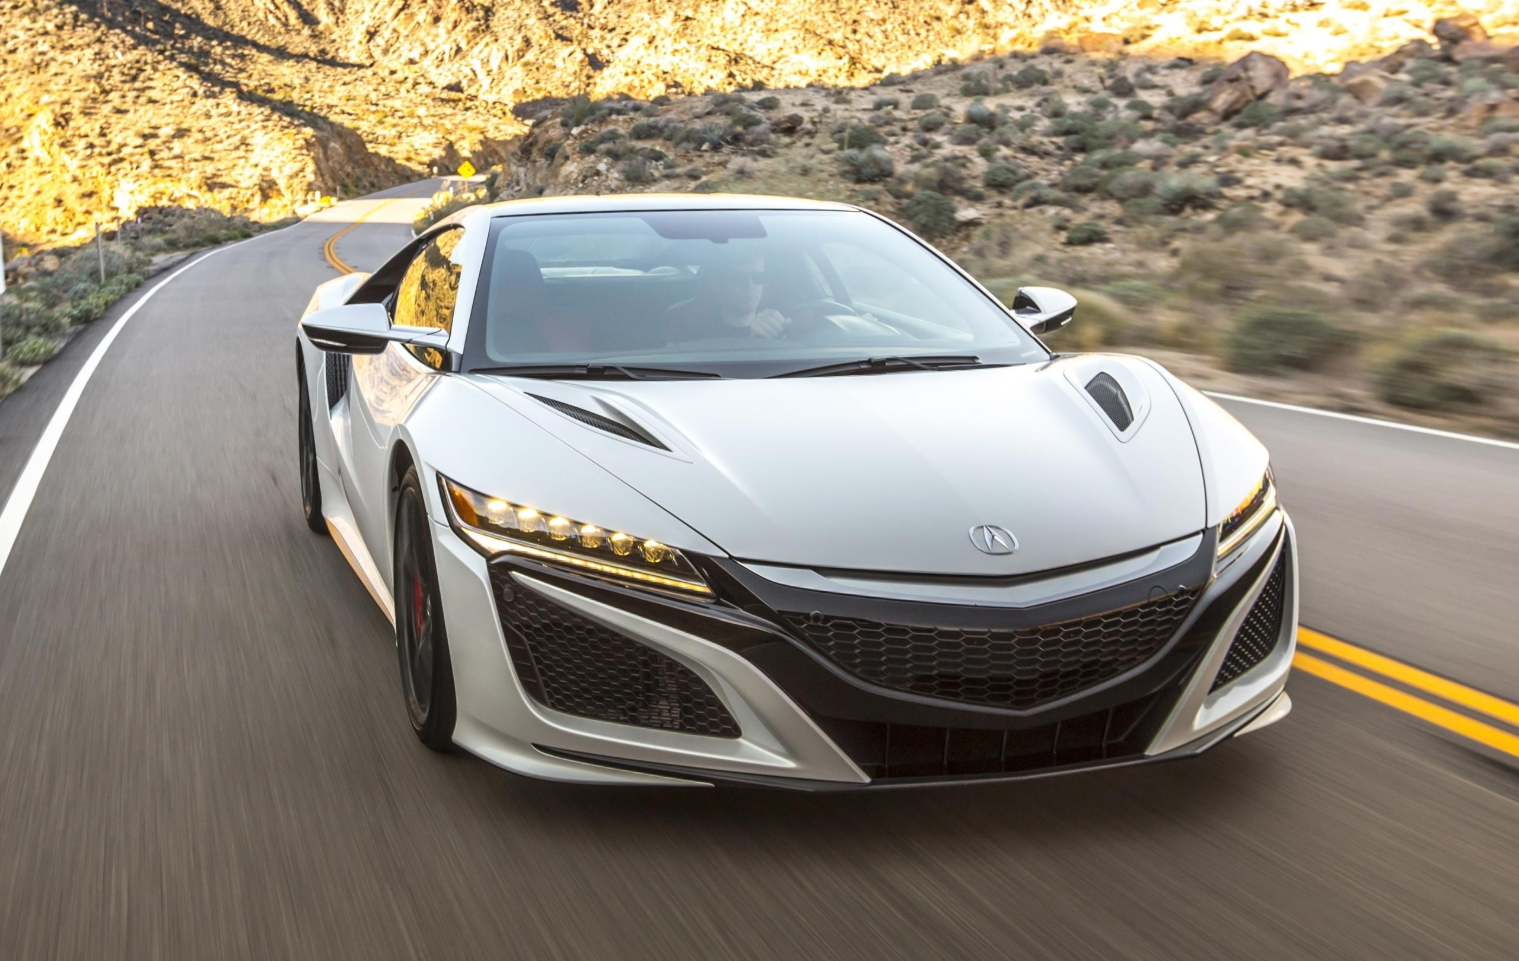 2019 Acura Nsx Msrp Release Date Exterior Engine Produced Combined With The Integrated United States Any 2019 Acura Nsx Is Going To Be The Substantial End